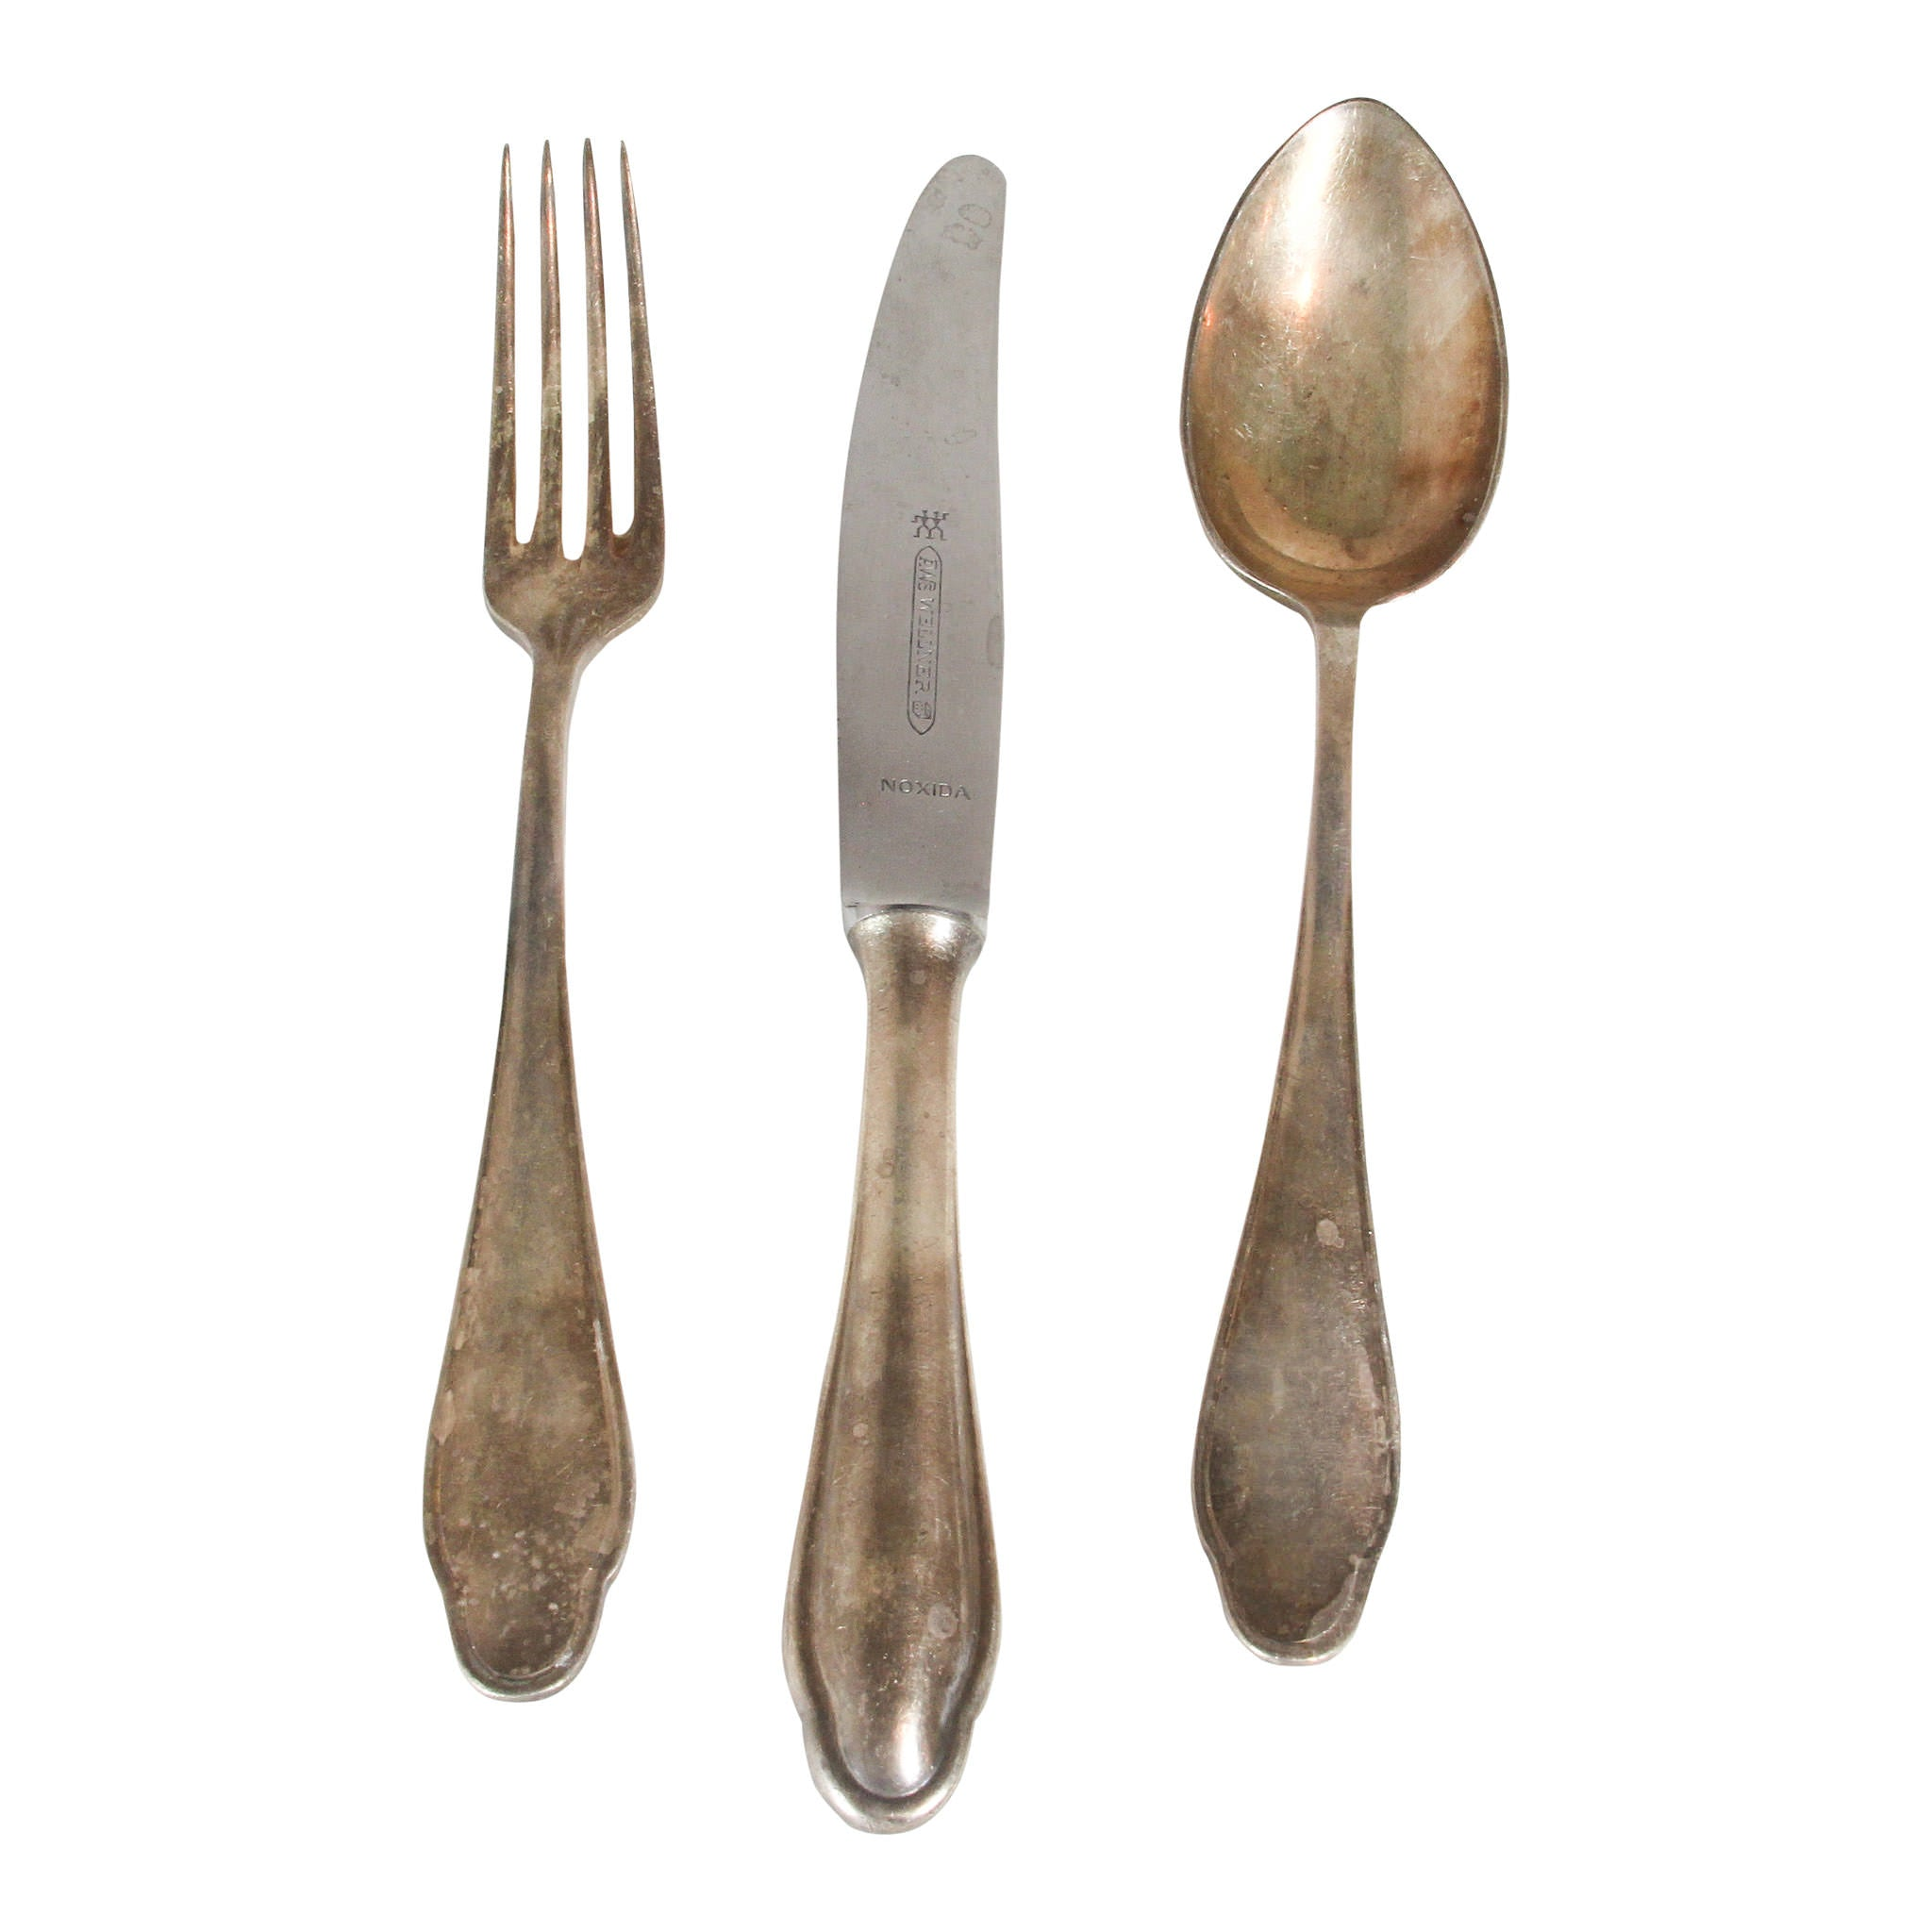 Wellner German Silverware